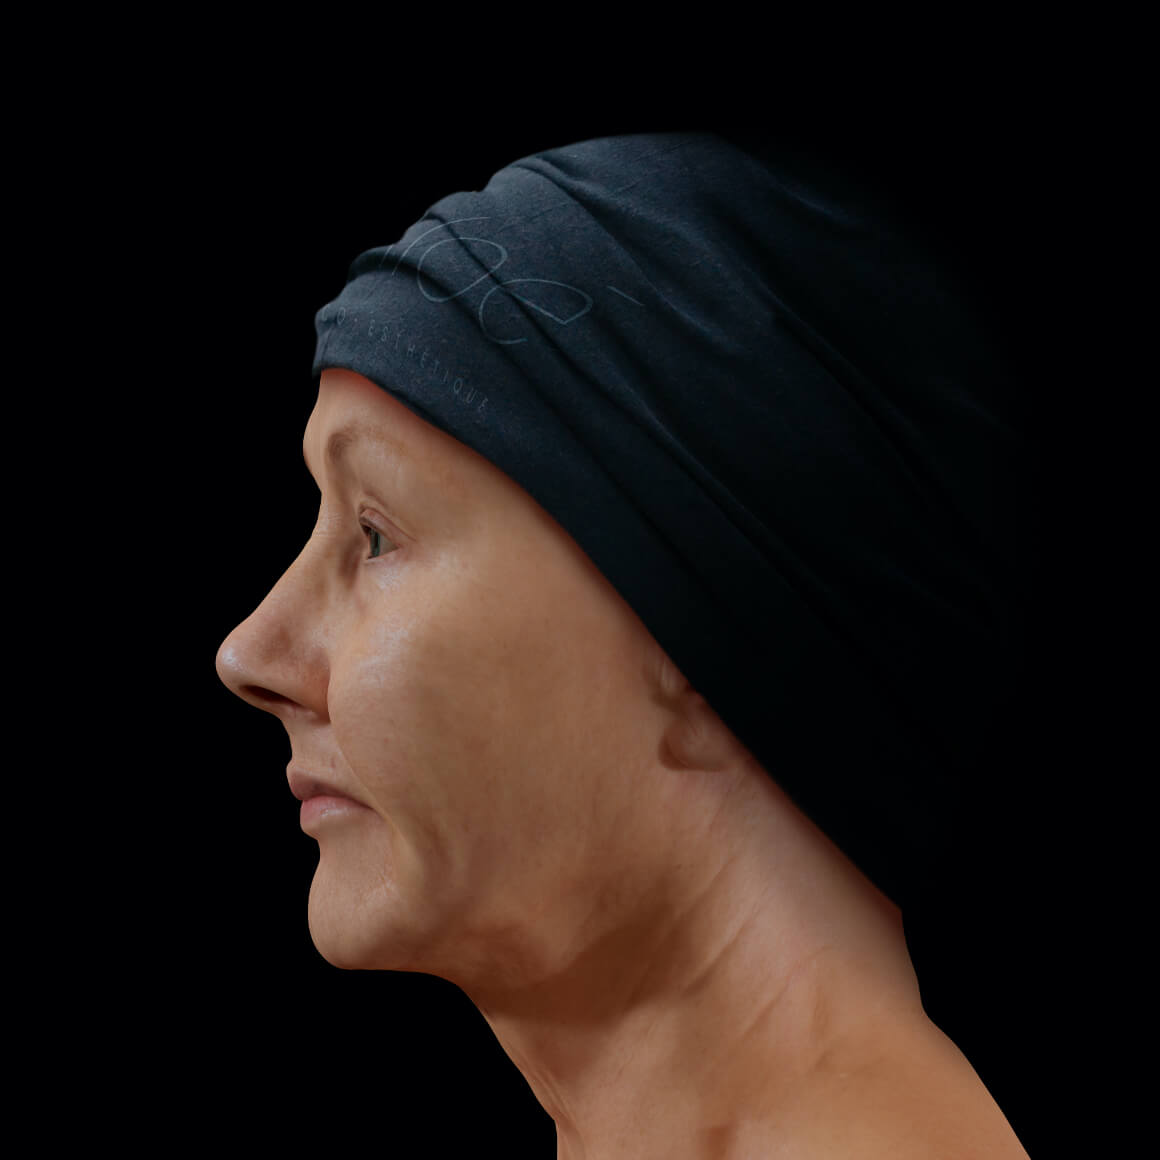 Clinique Chloé female patient positioned sideways showing facial skin laxity, or loss of skin firmness